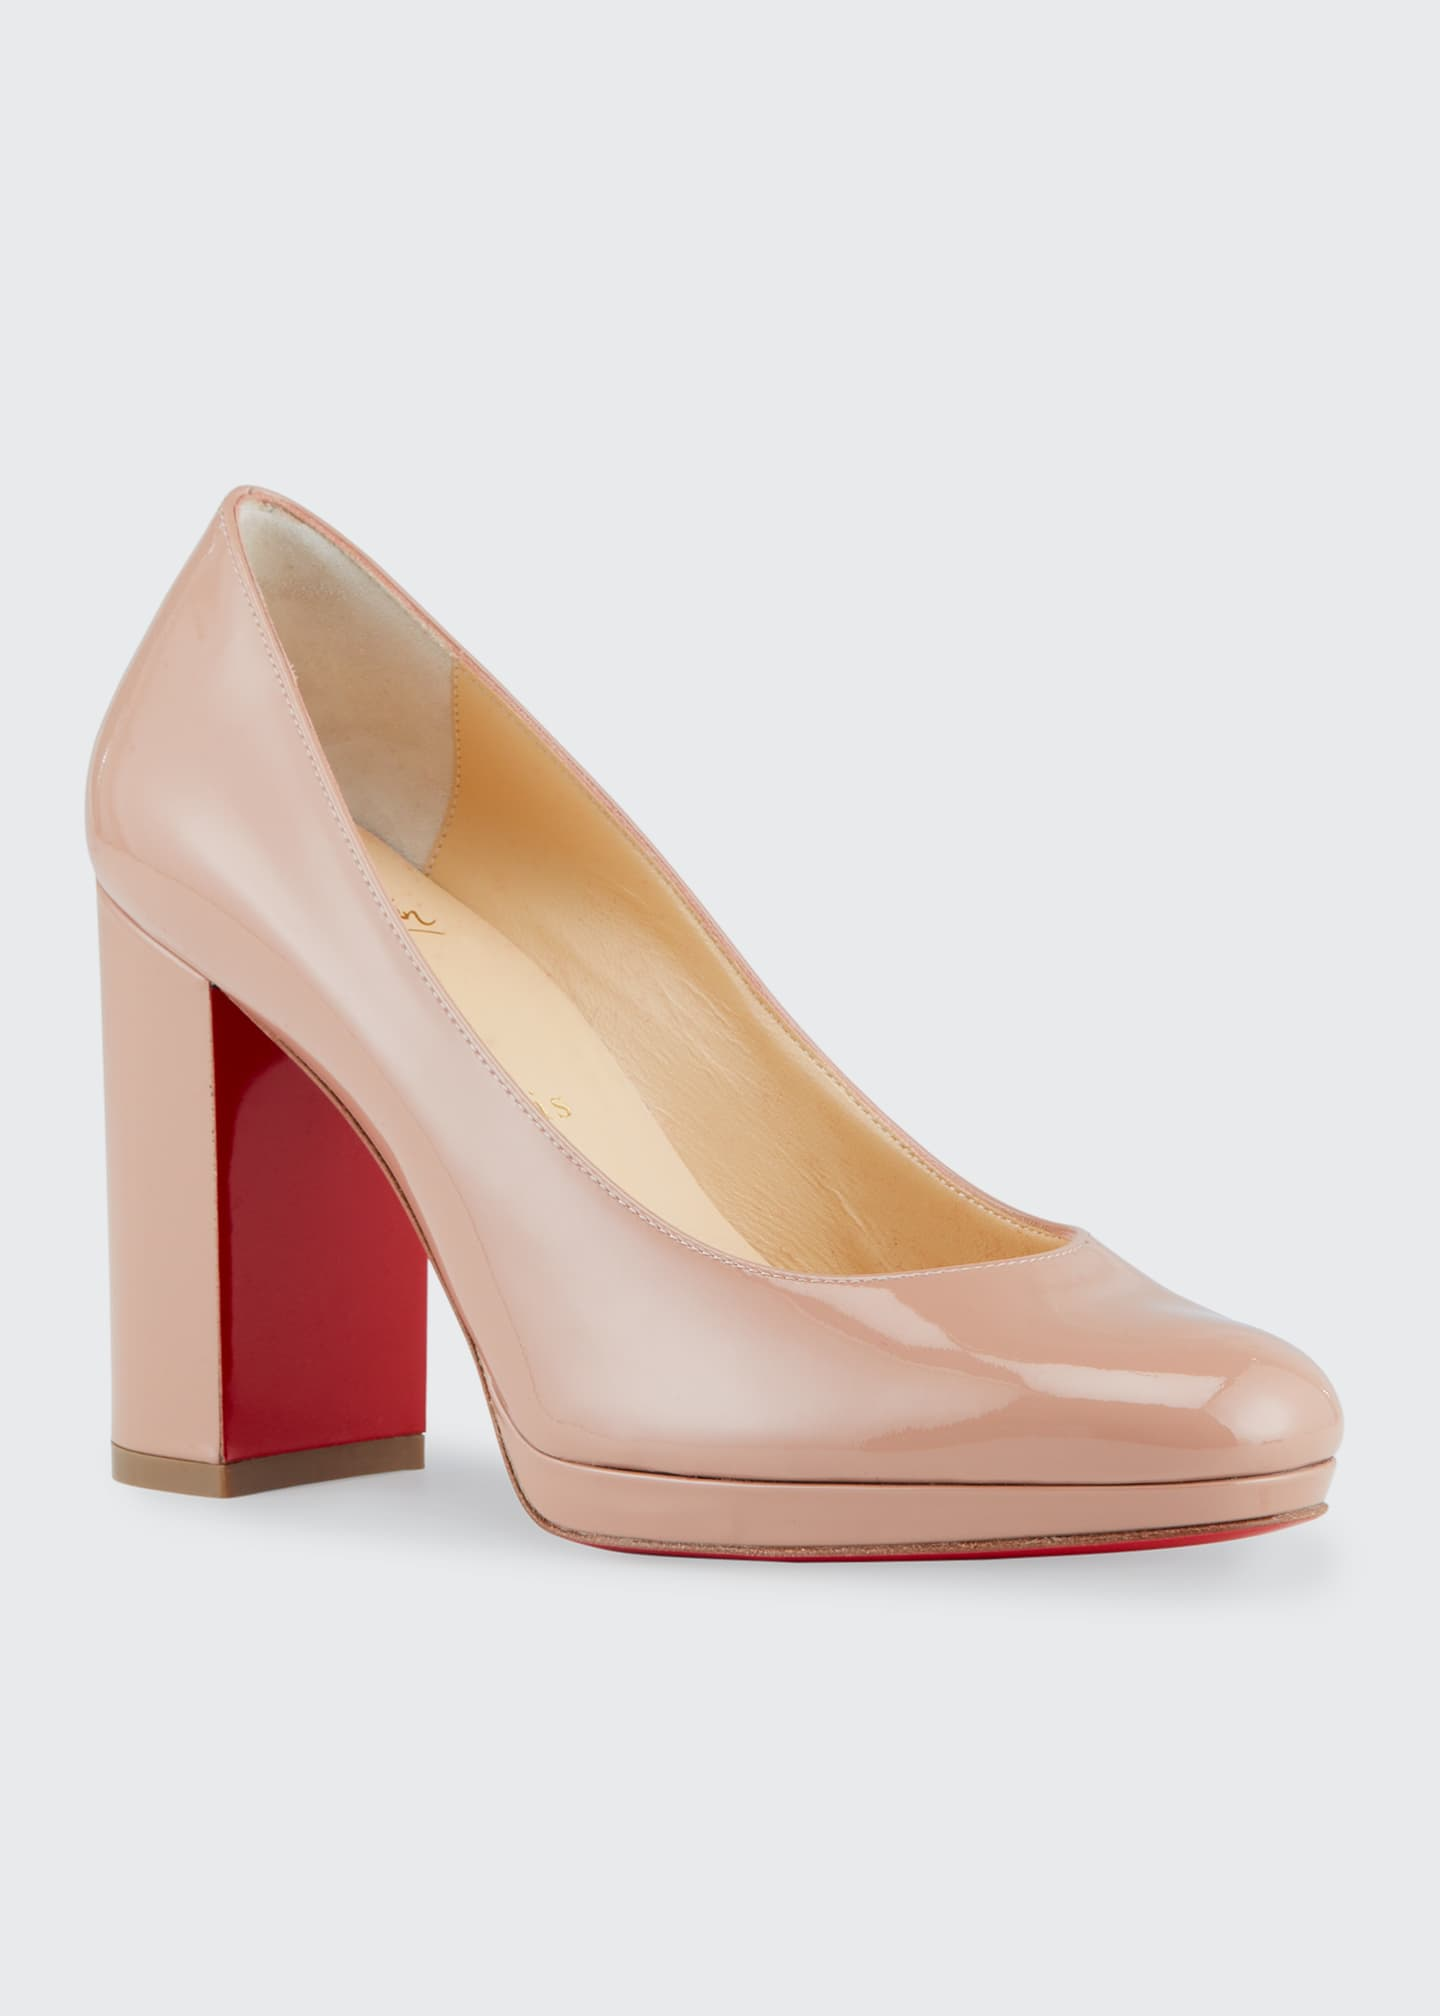 Image 2 of 4: Kabetts Patent Red Sole Pumps